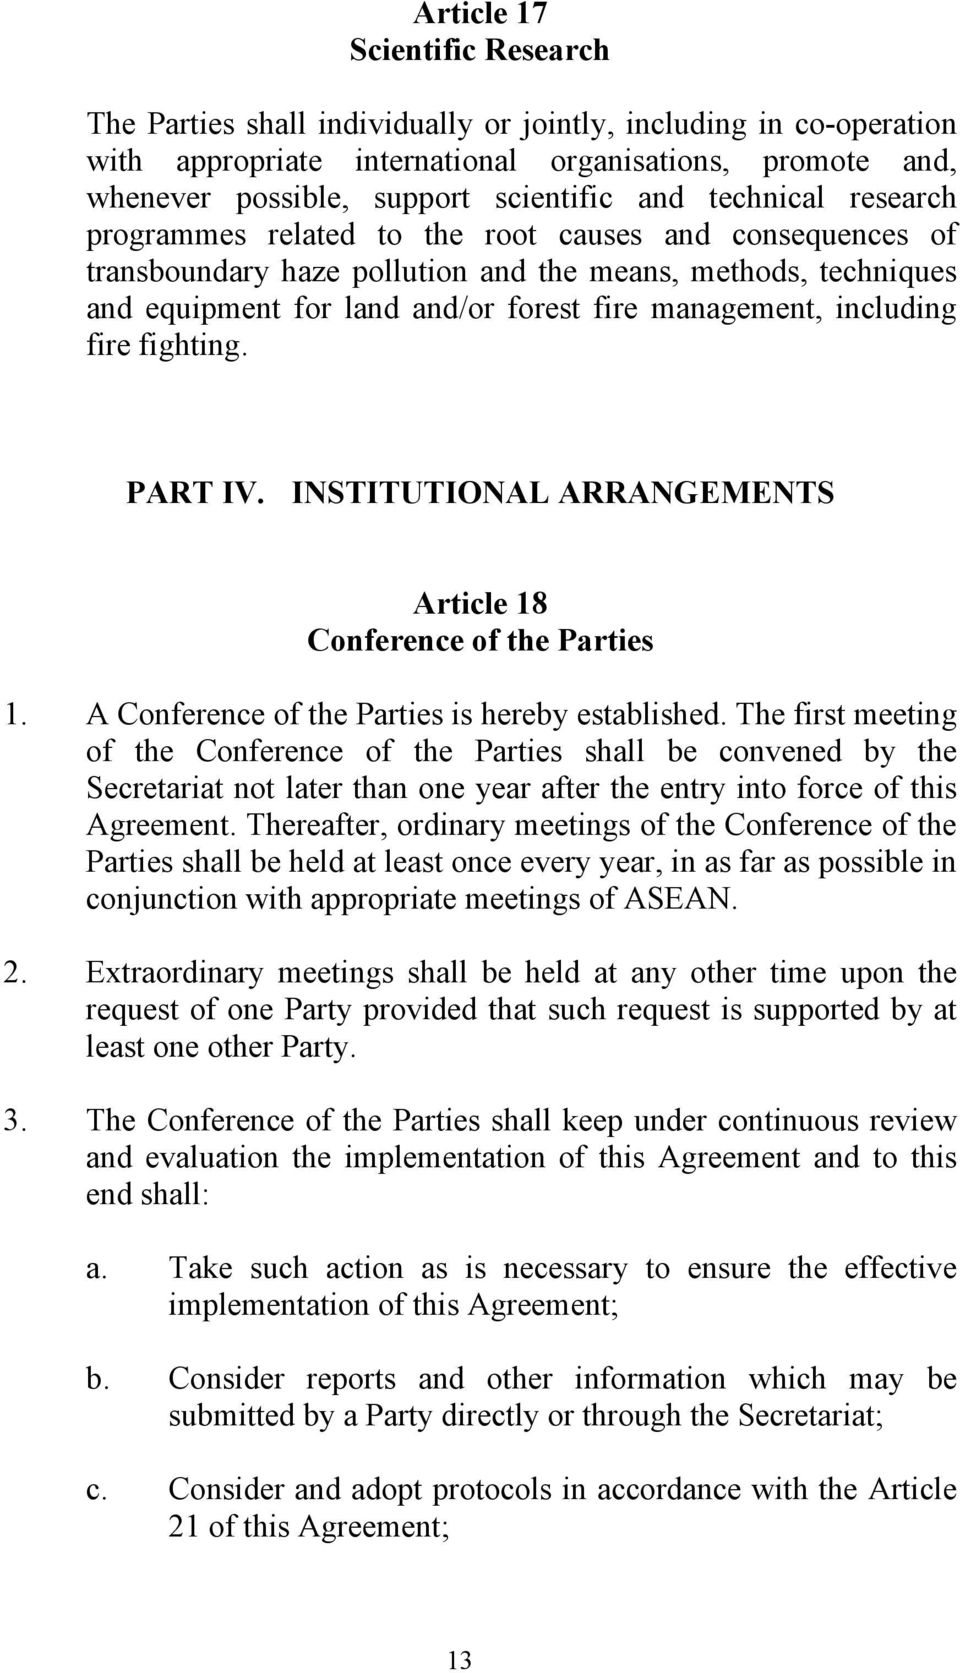 including fire fighting. PART IV. INSTITUTIONAL ARRANGEMENTS Article 18 Conference of the Parties 1. A Conference of the Parties is hereby established.